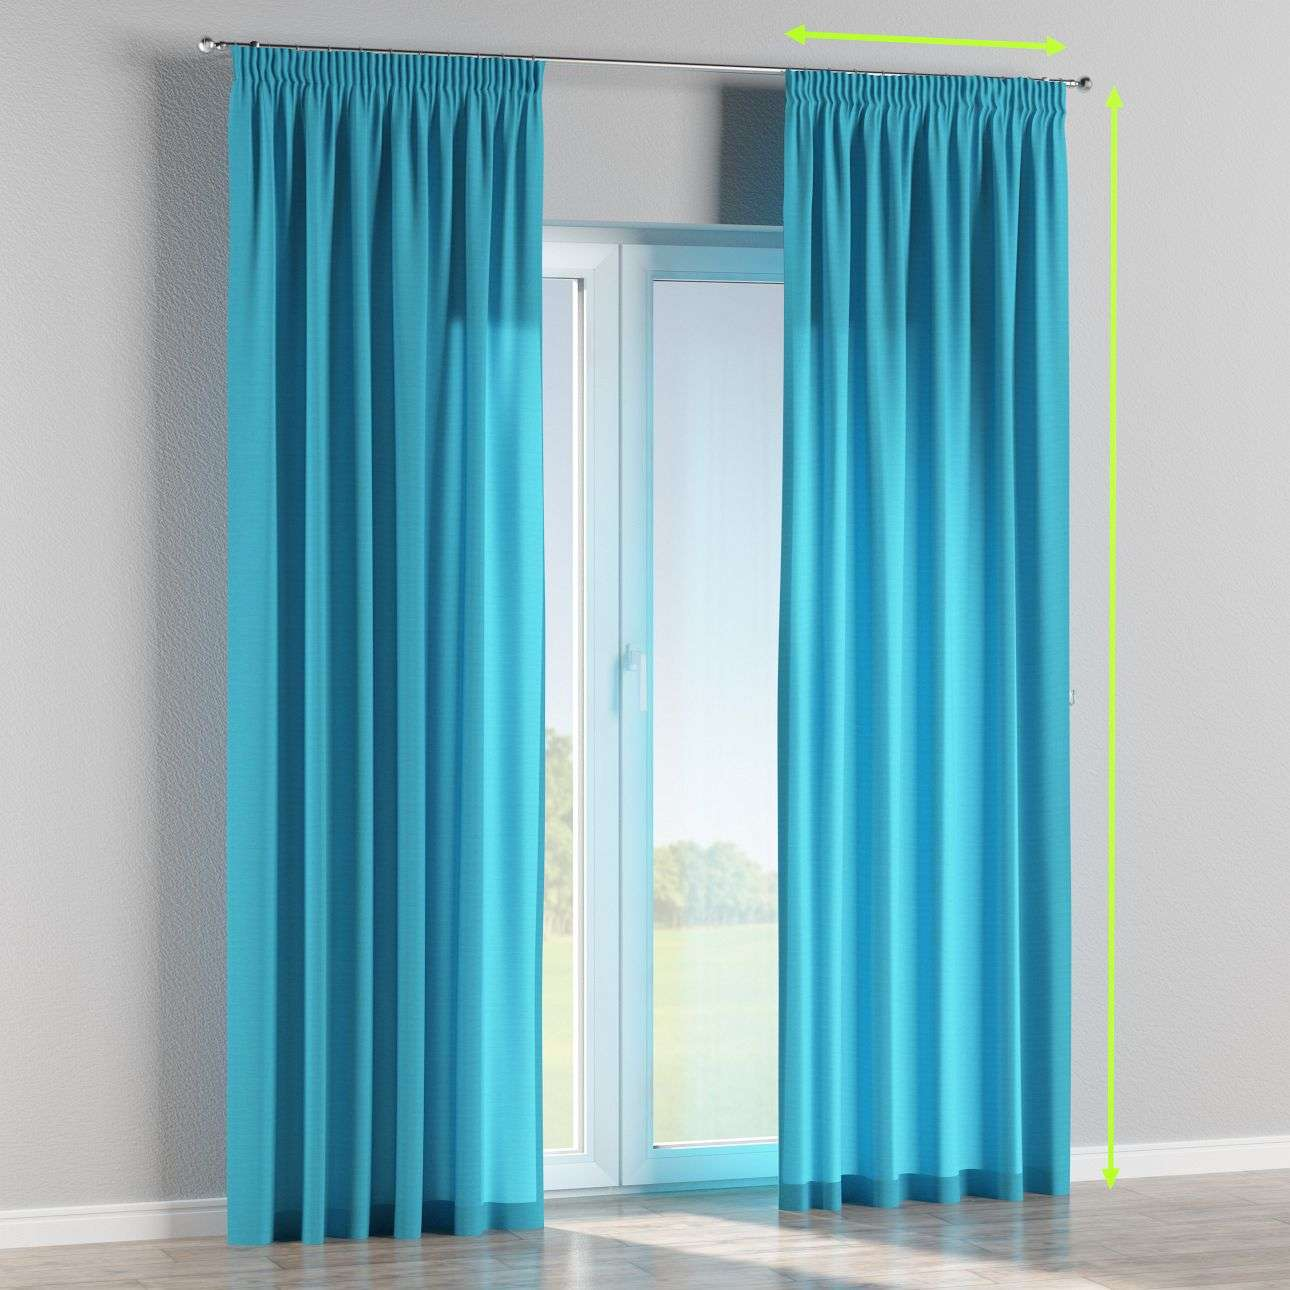 Pencil pleat curtain in collection Jupiter, fabric: 127-70